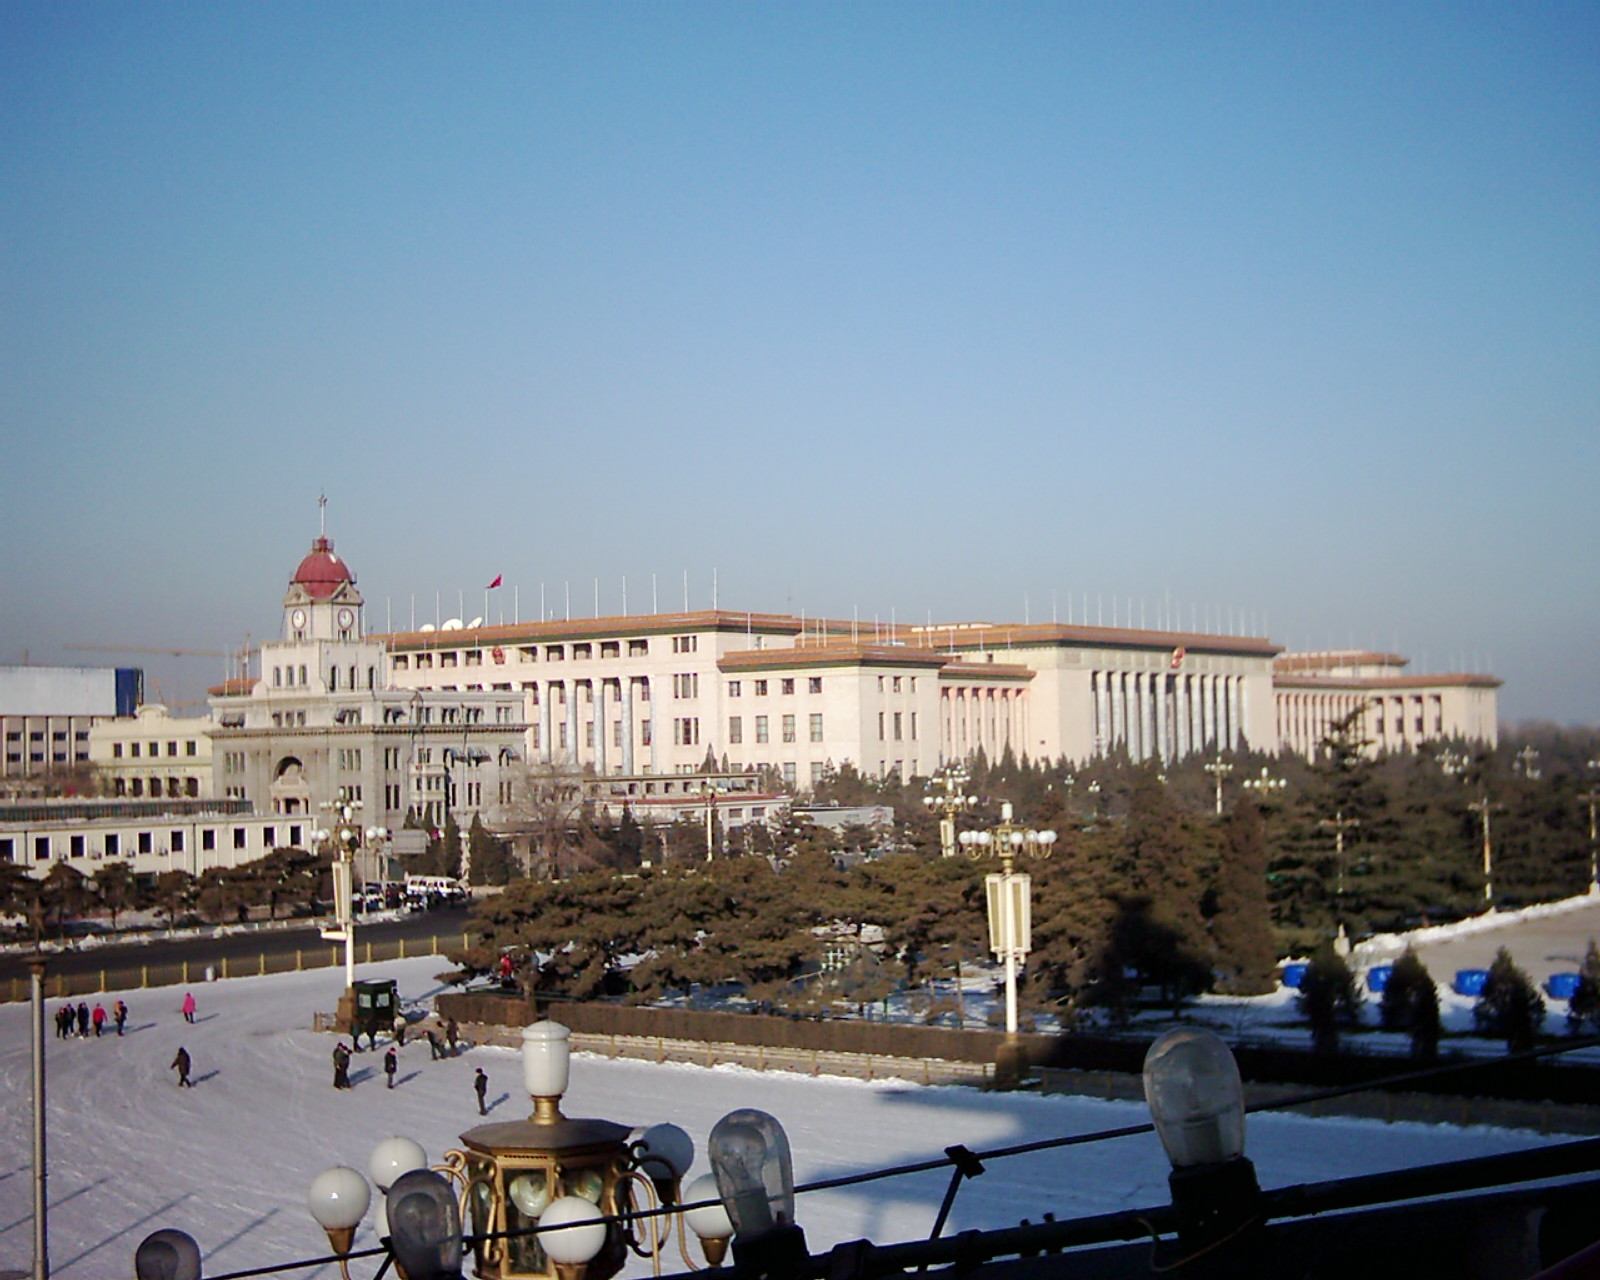 http://faculty.citadel.edu/silver/china_photos/tiananmen_2.JPG